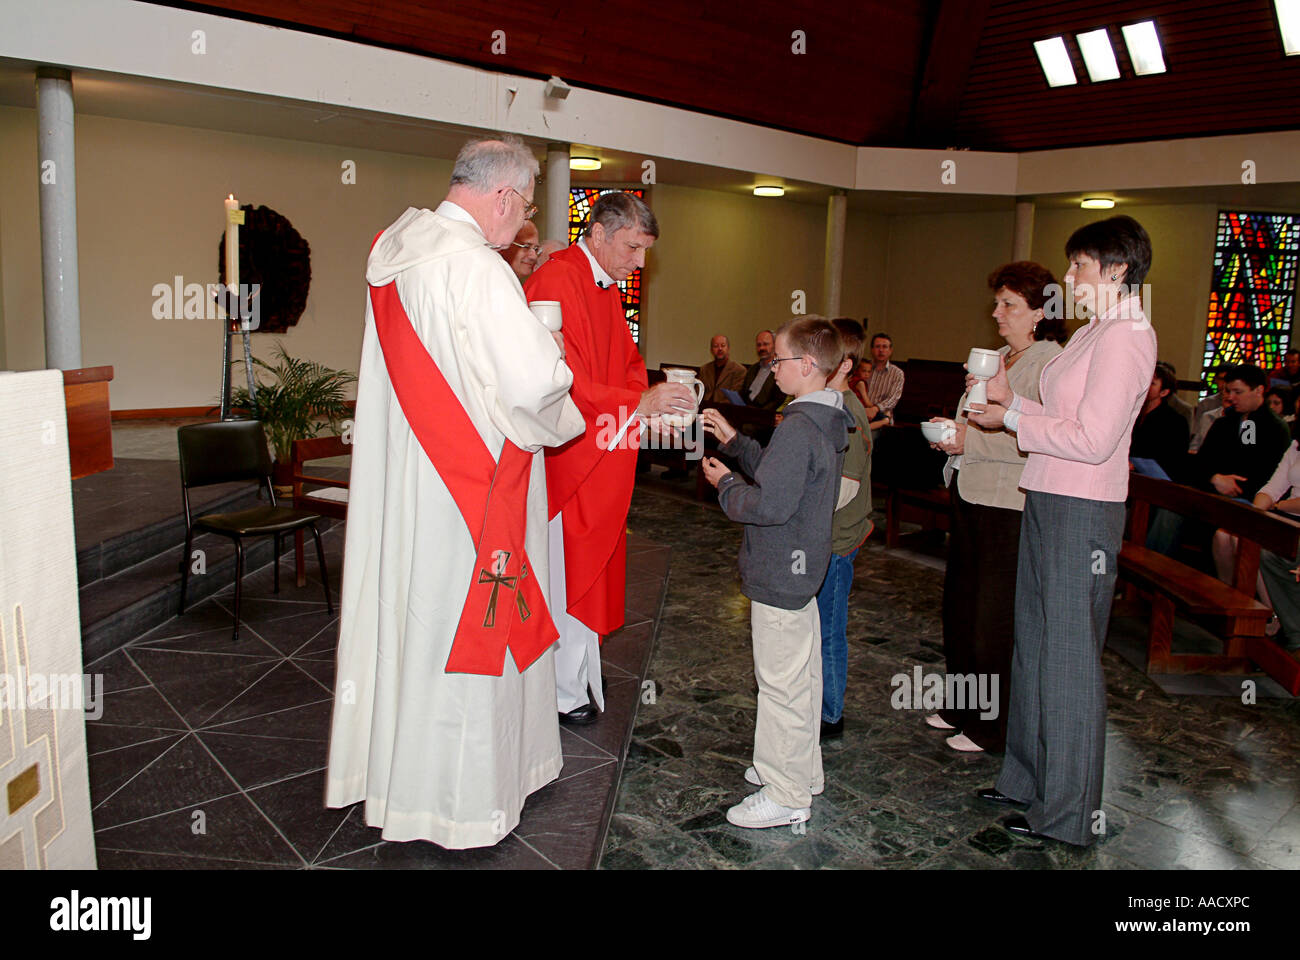 Presentation of the gifts during the first mass of a newly